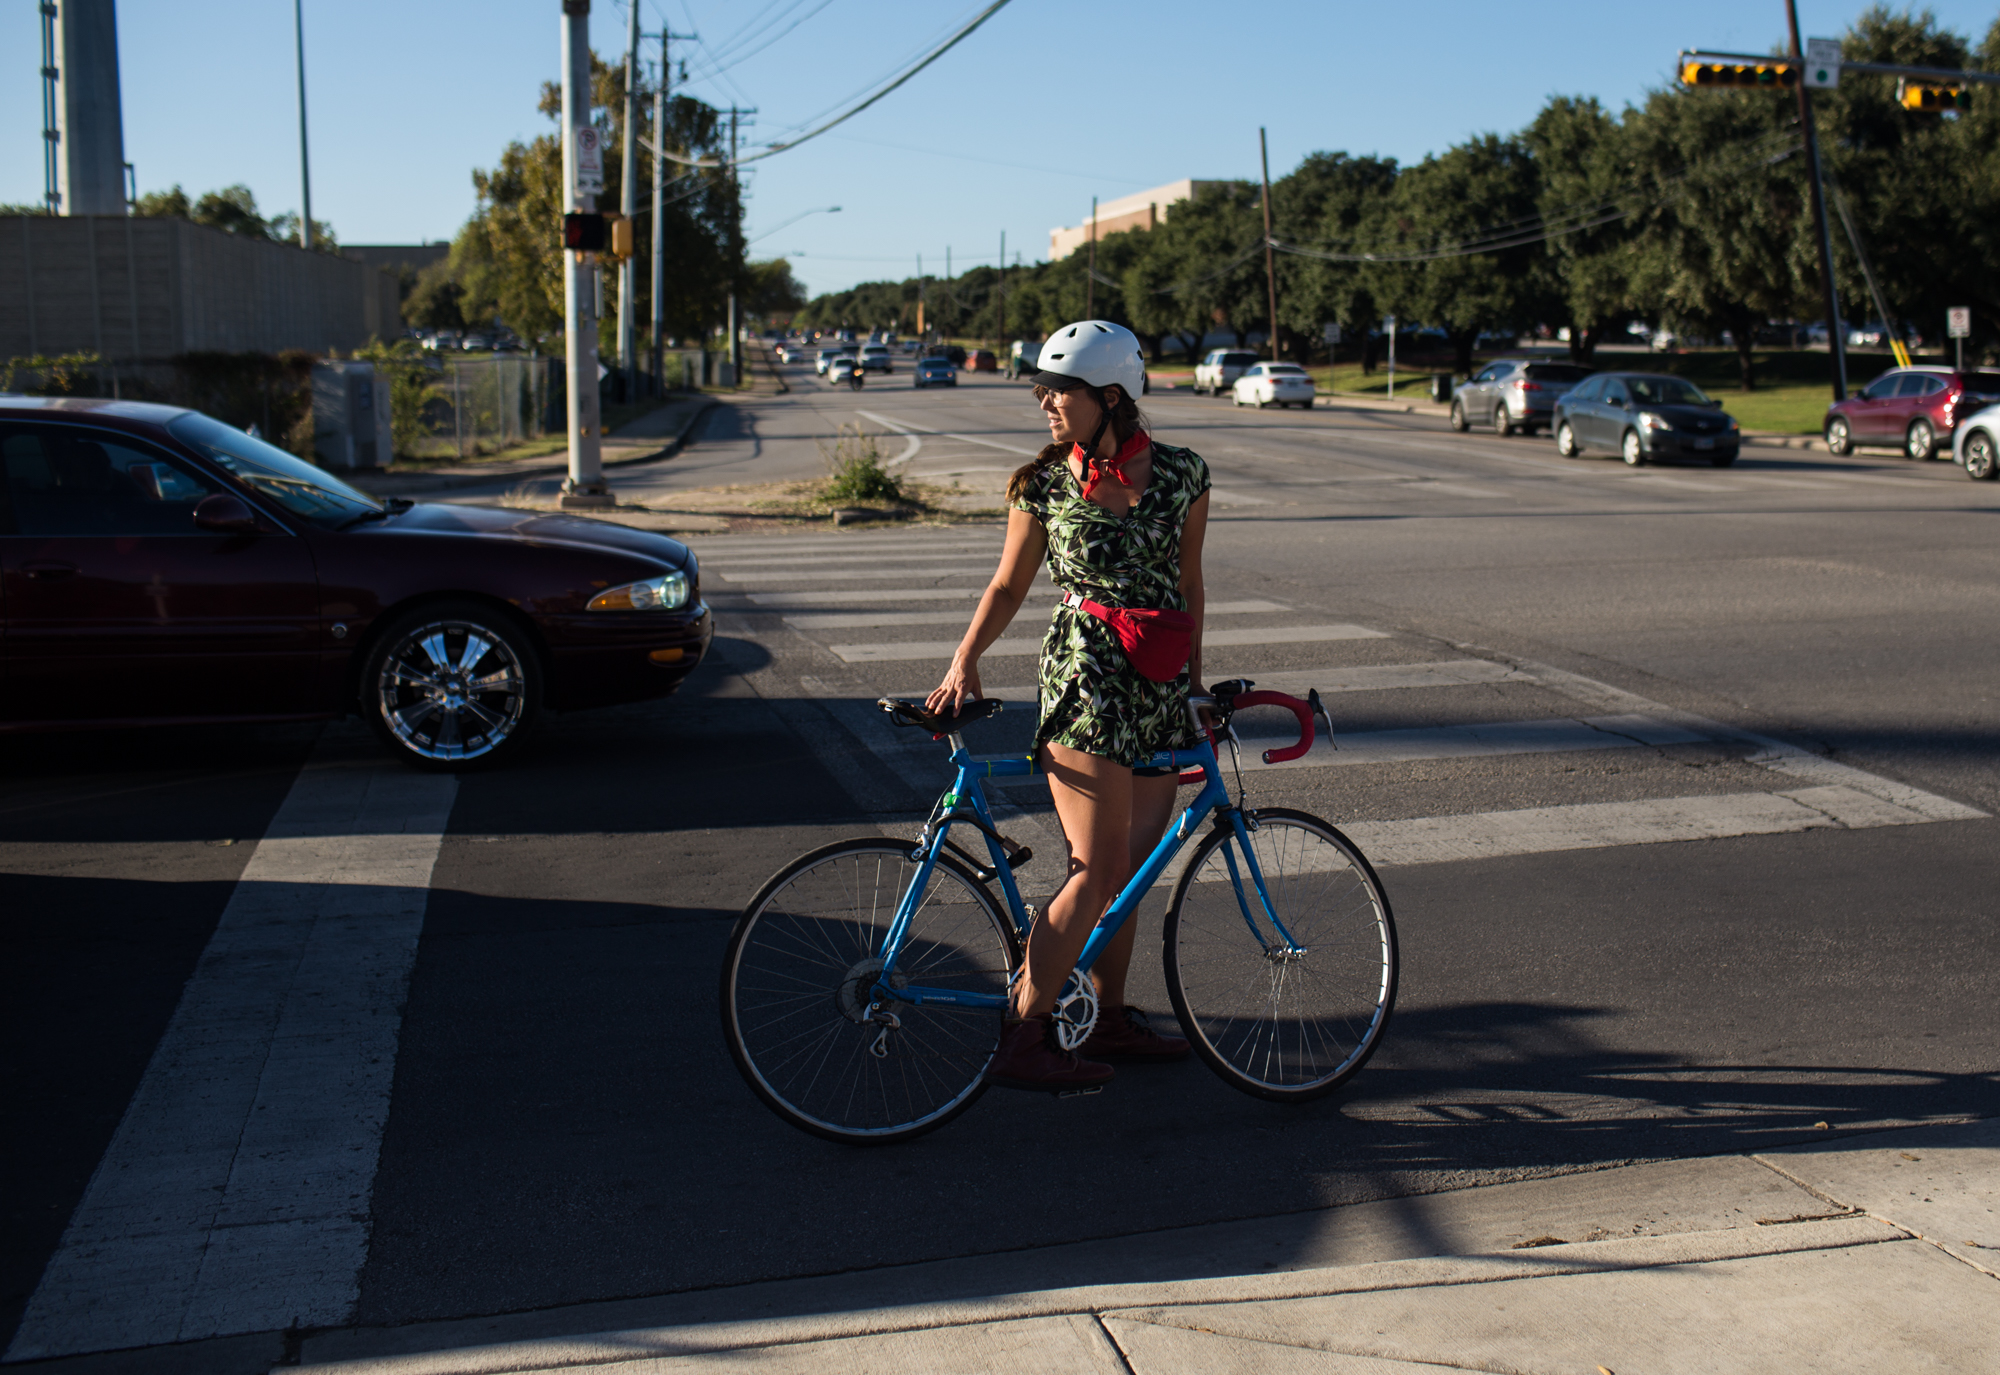 Amanda has had to move further and further from the center of the city due to rising rent prices, but that commuting by car or bus from where she lives in University Hills is incredibly inefficient, so she bikes around 20 miles a day to work. North Austin, November 26, 2016.